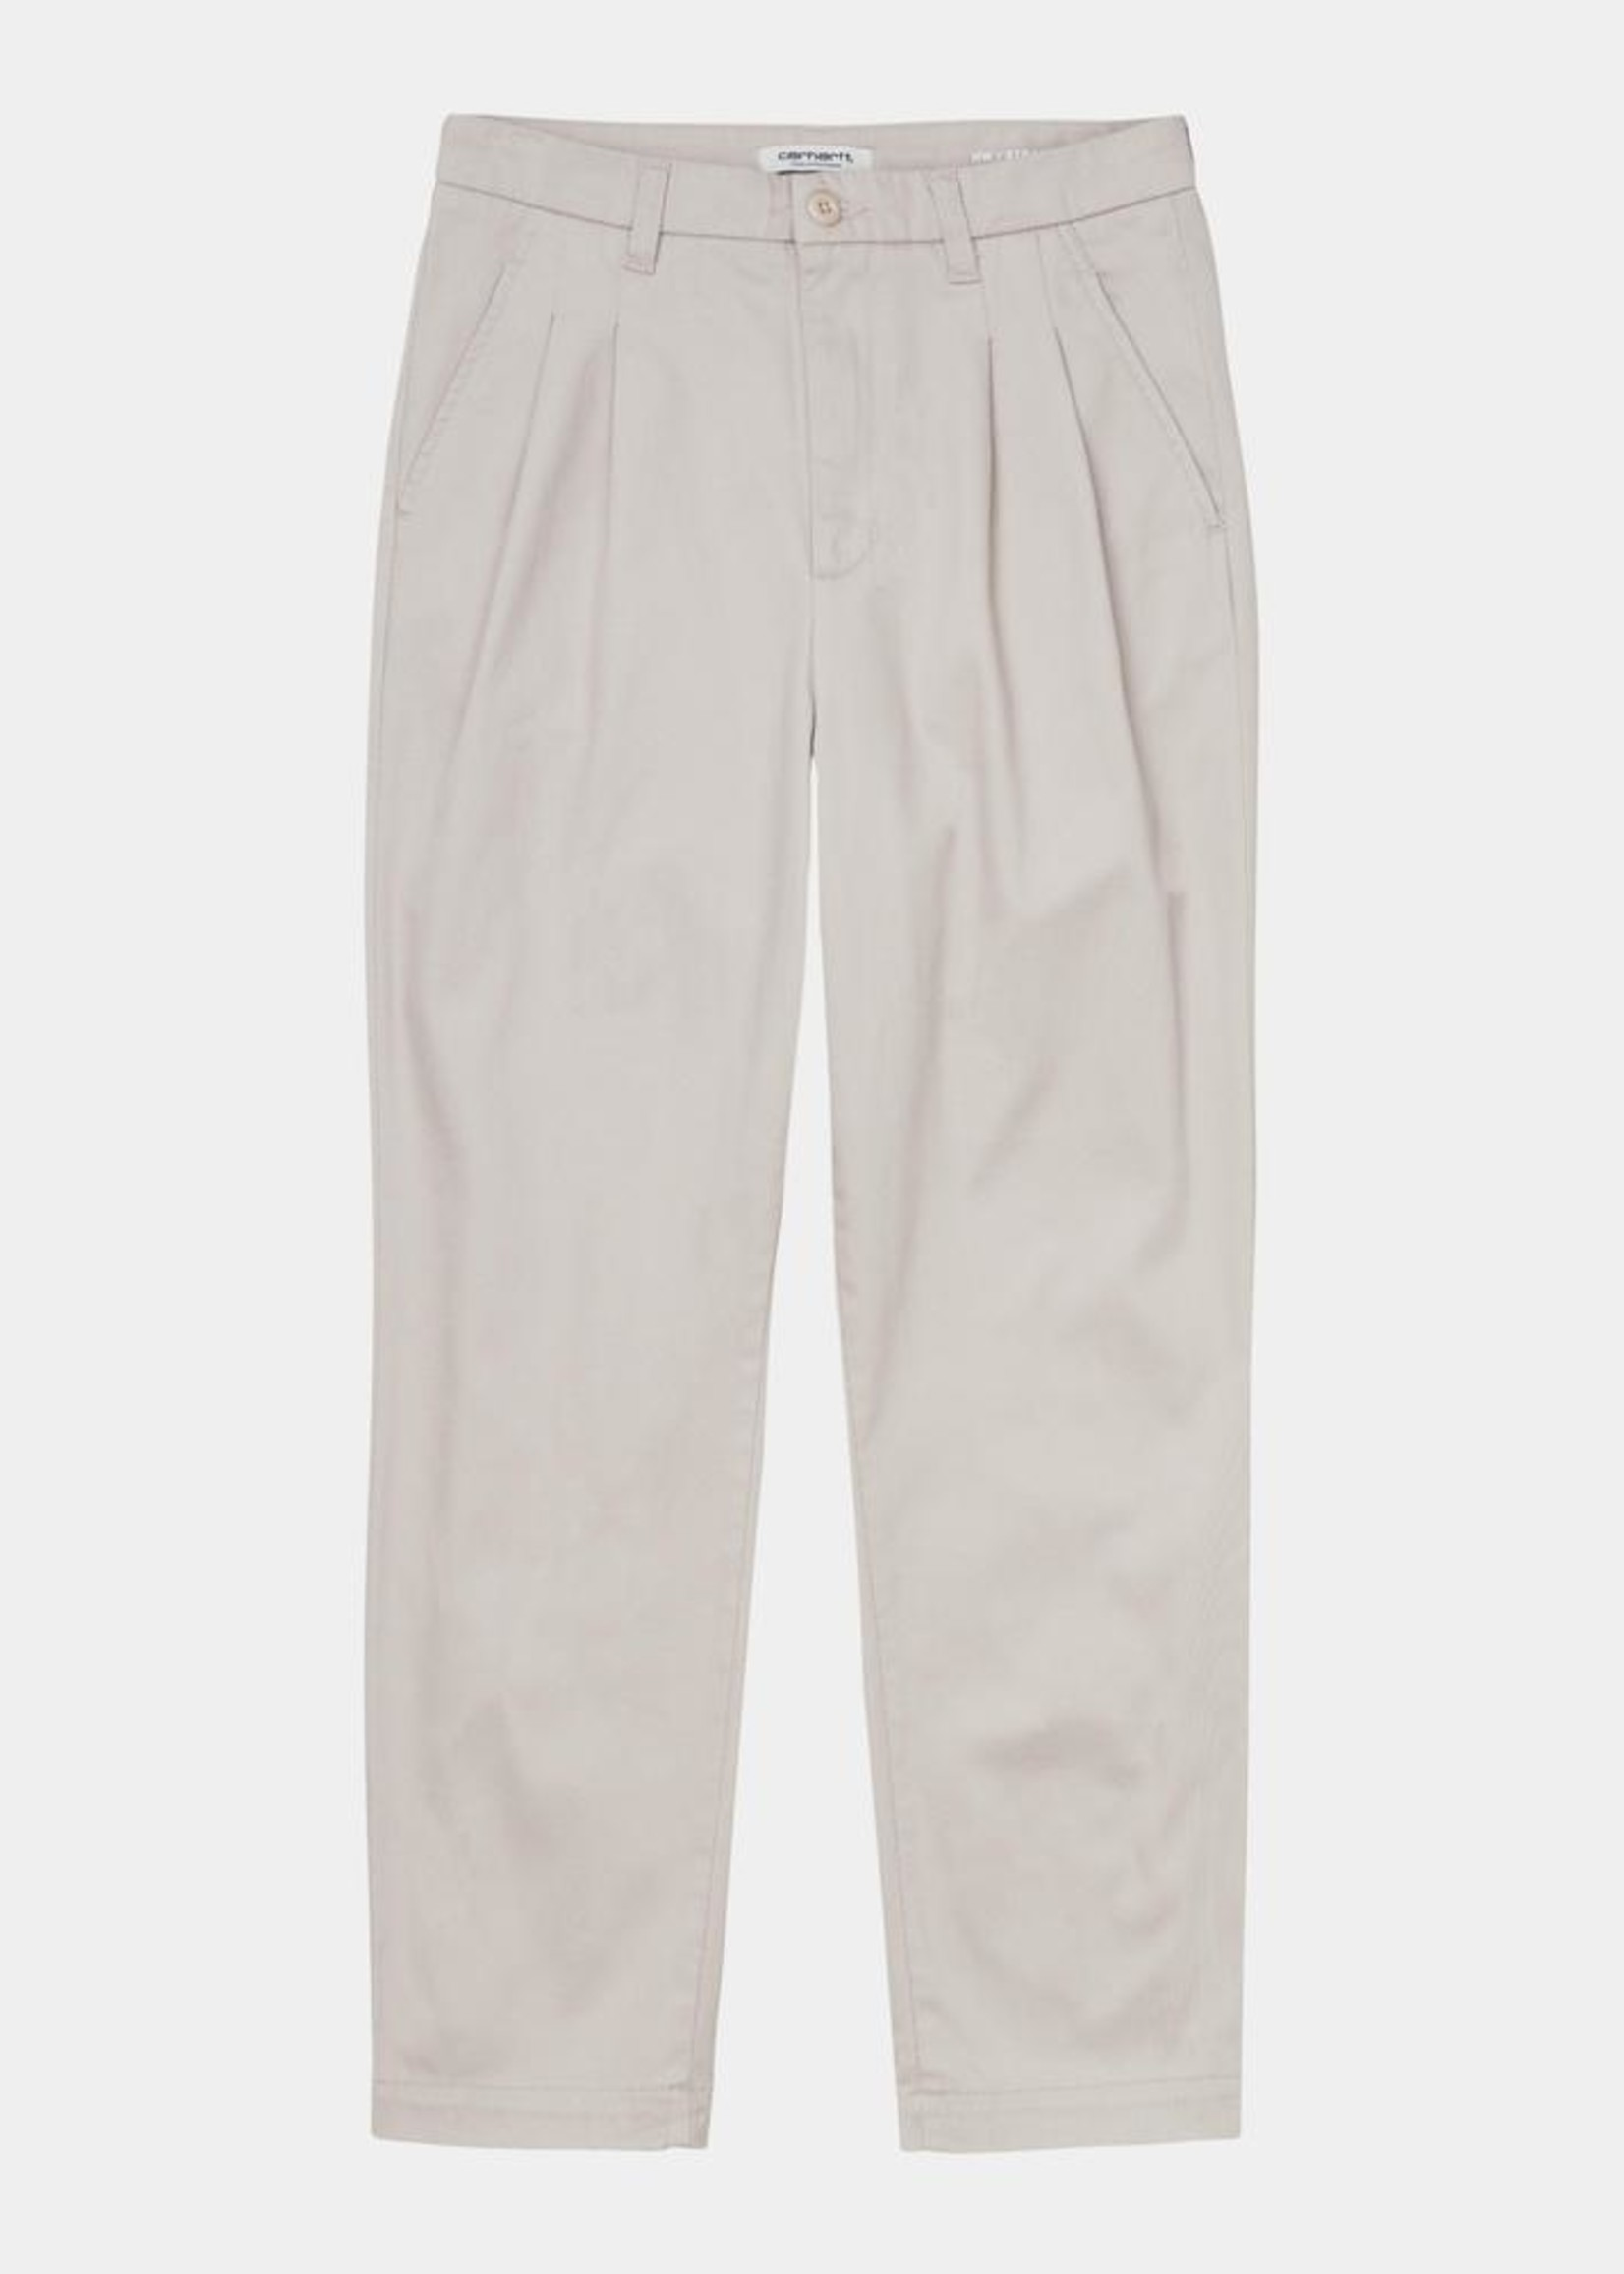 Carhartt Work In Progress Women's Cara Pant Glaze Rinsed